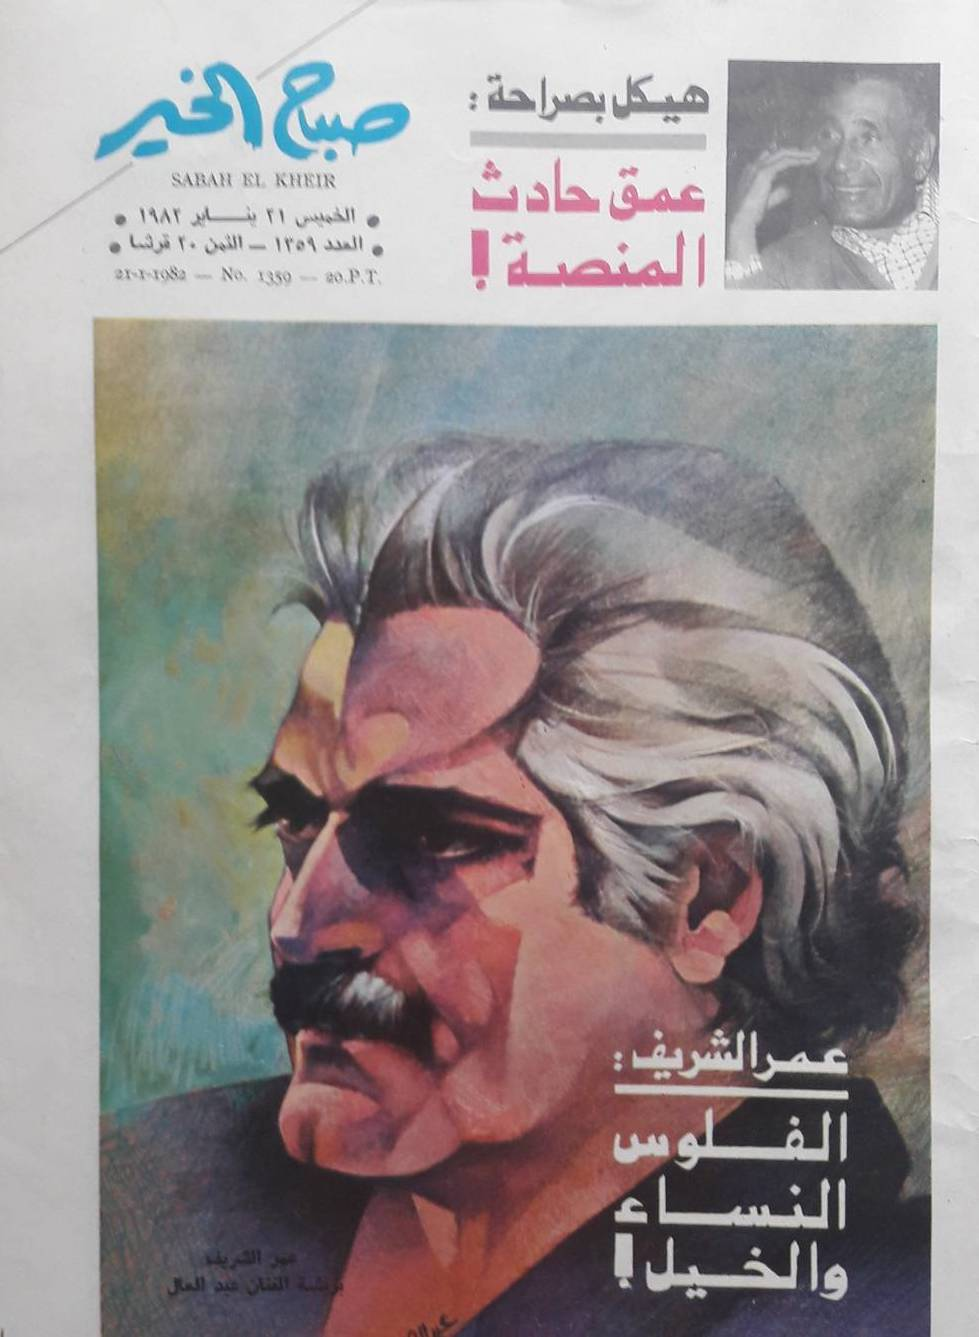 Sabah El kheir issue from 1982